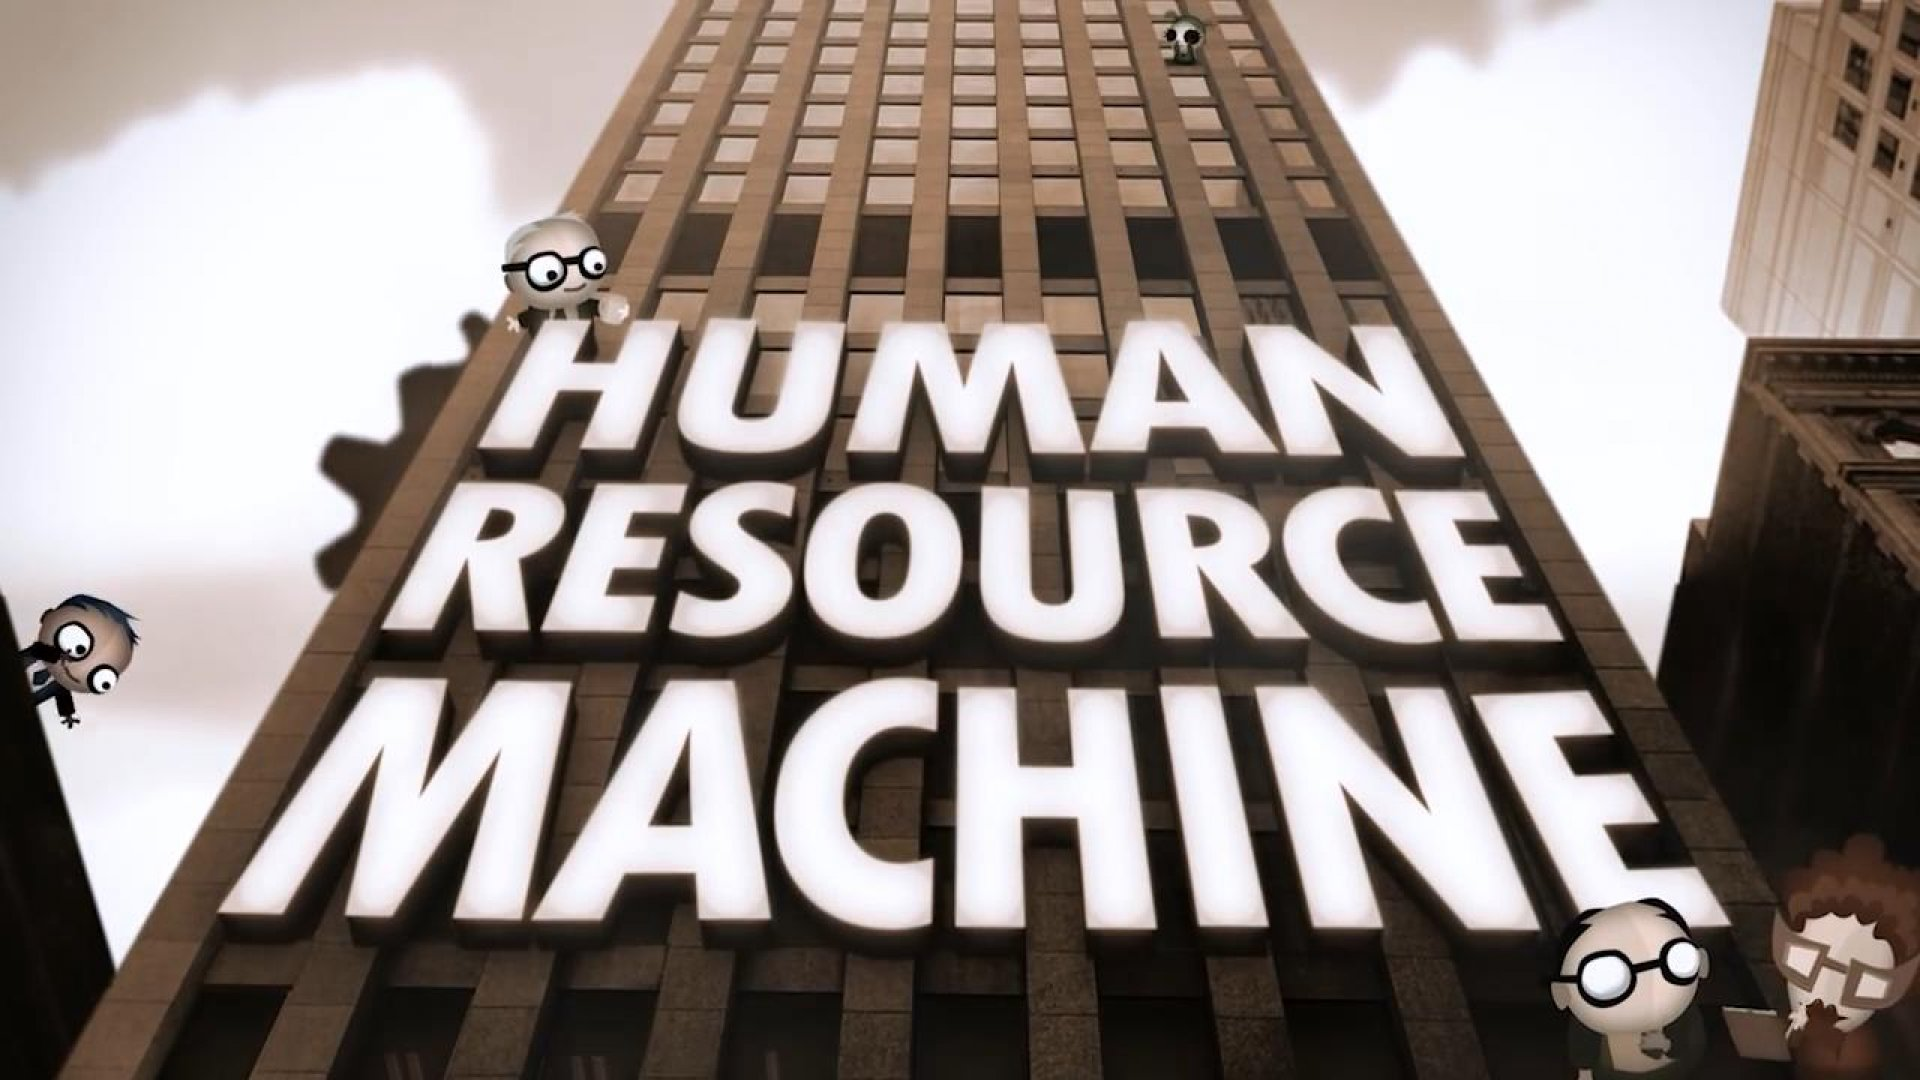 Human Resource Machine (iOS)